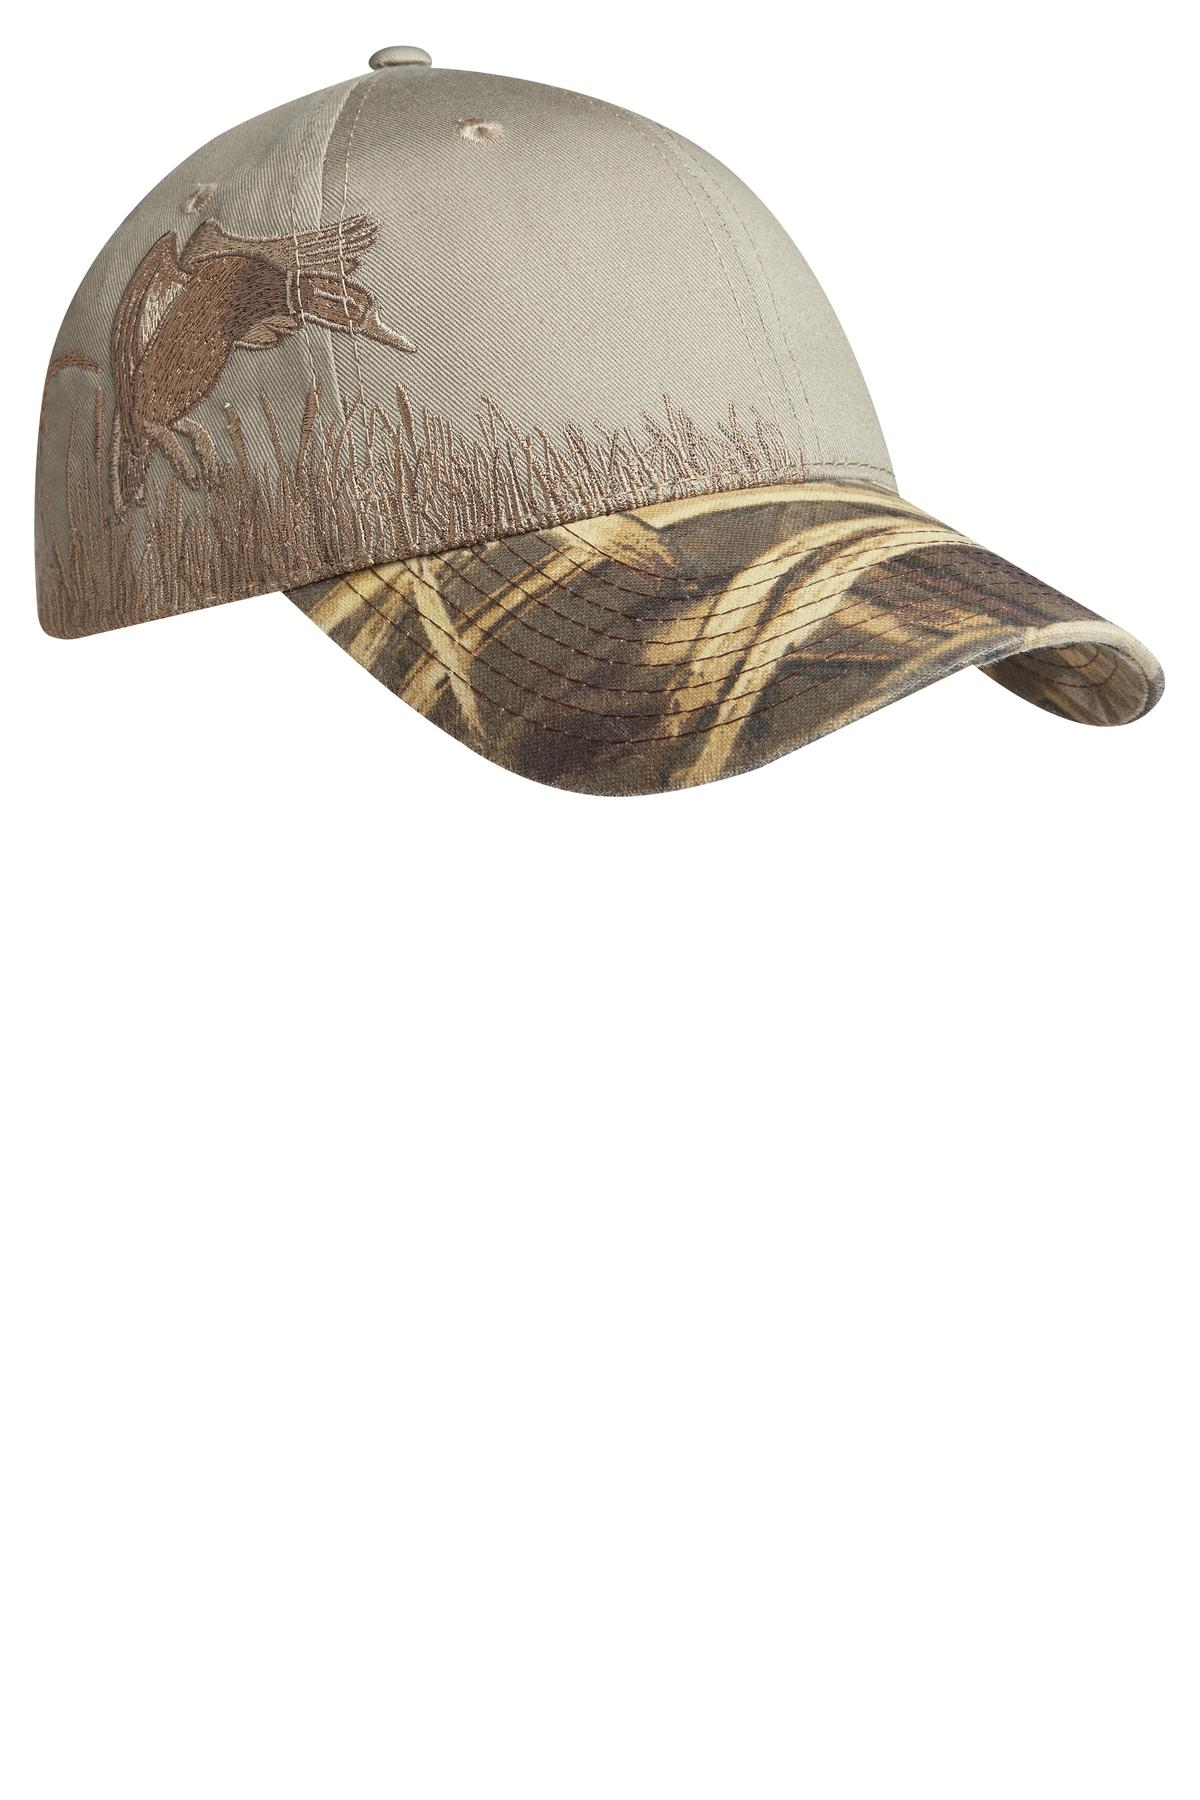 Port Authority ®  Embroidered Camouflage Cap. C820 - Realtree MAX-5/ Khaki/ Duck